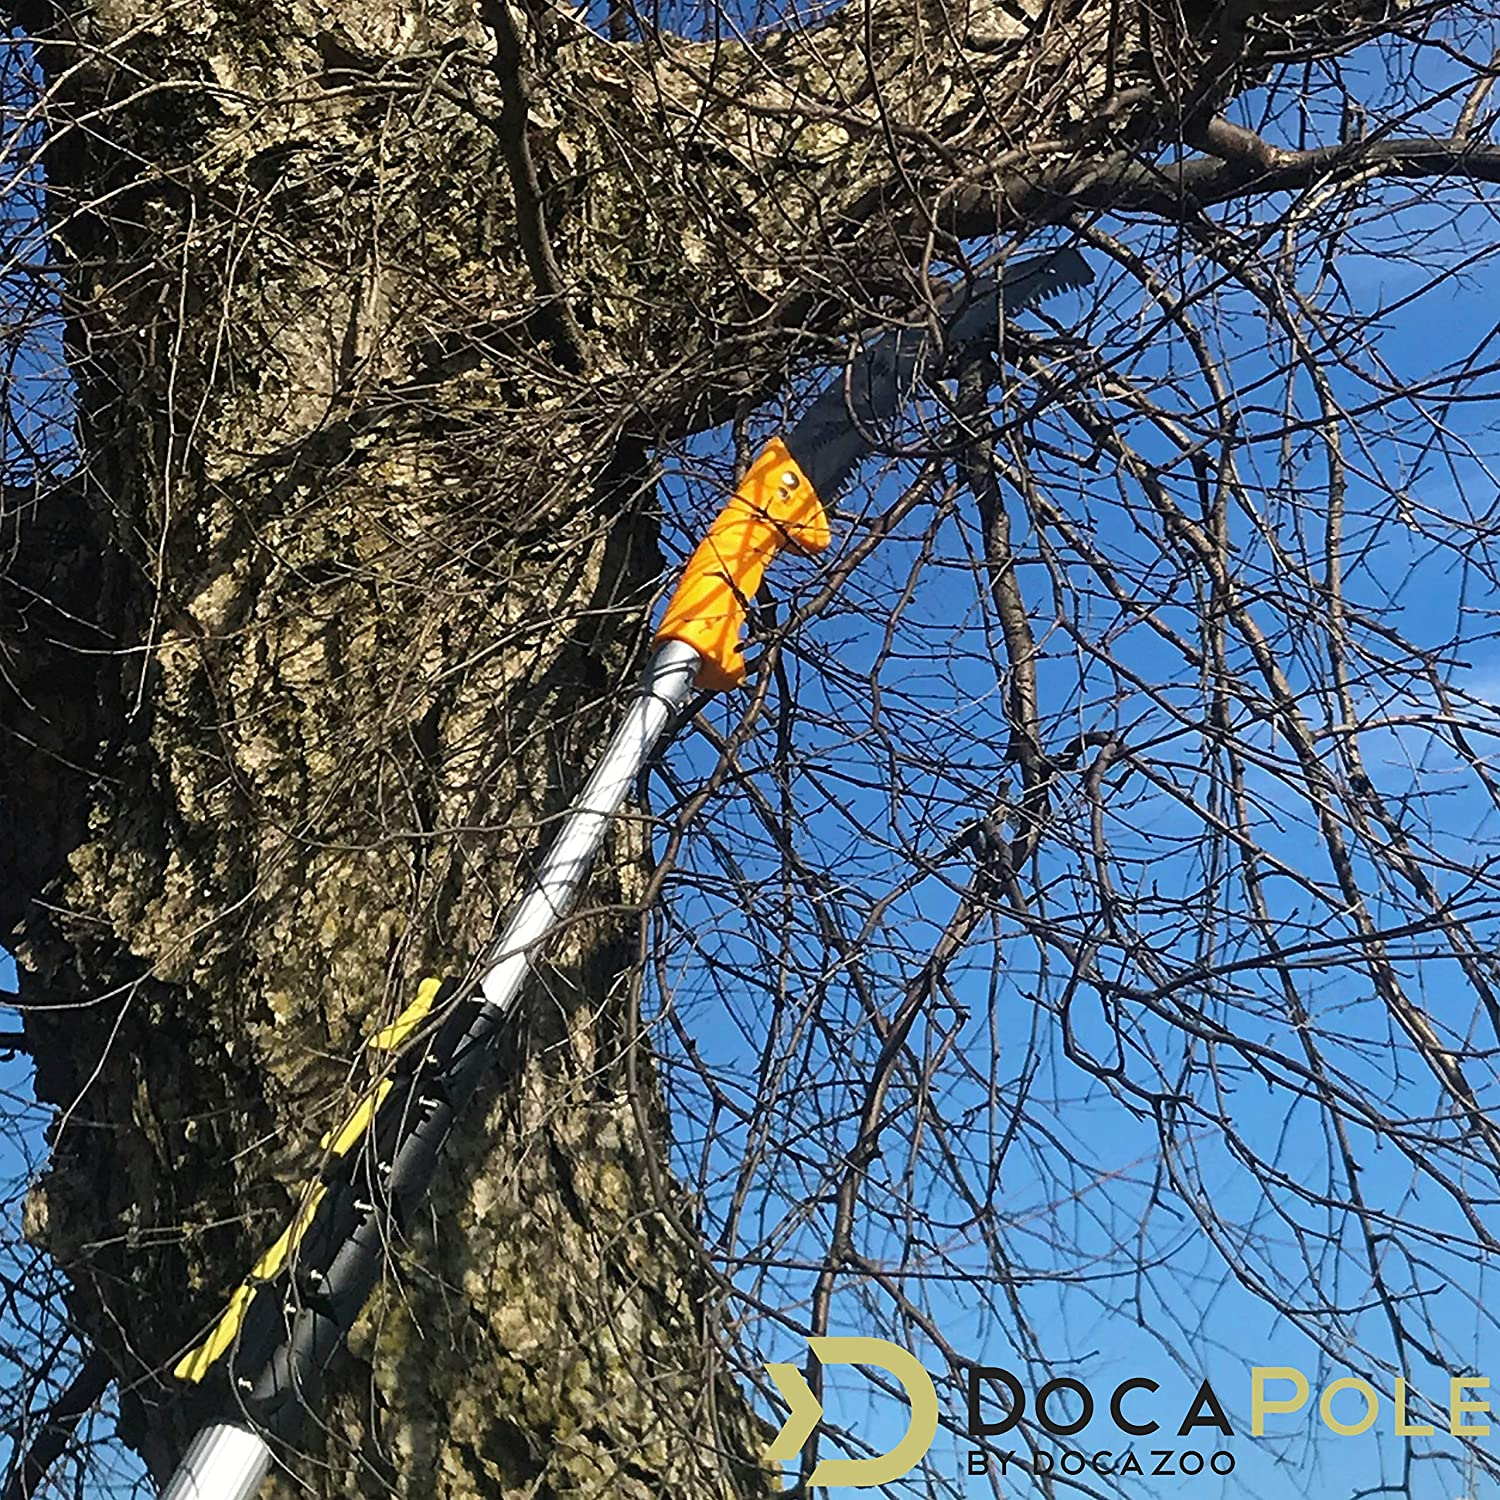 DocaPole 6-24 Foot Pole Pruning Saw